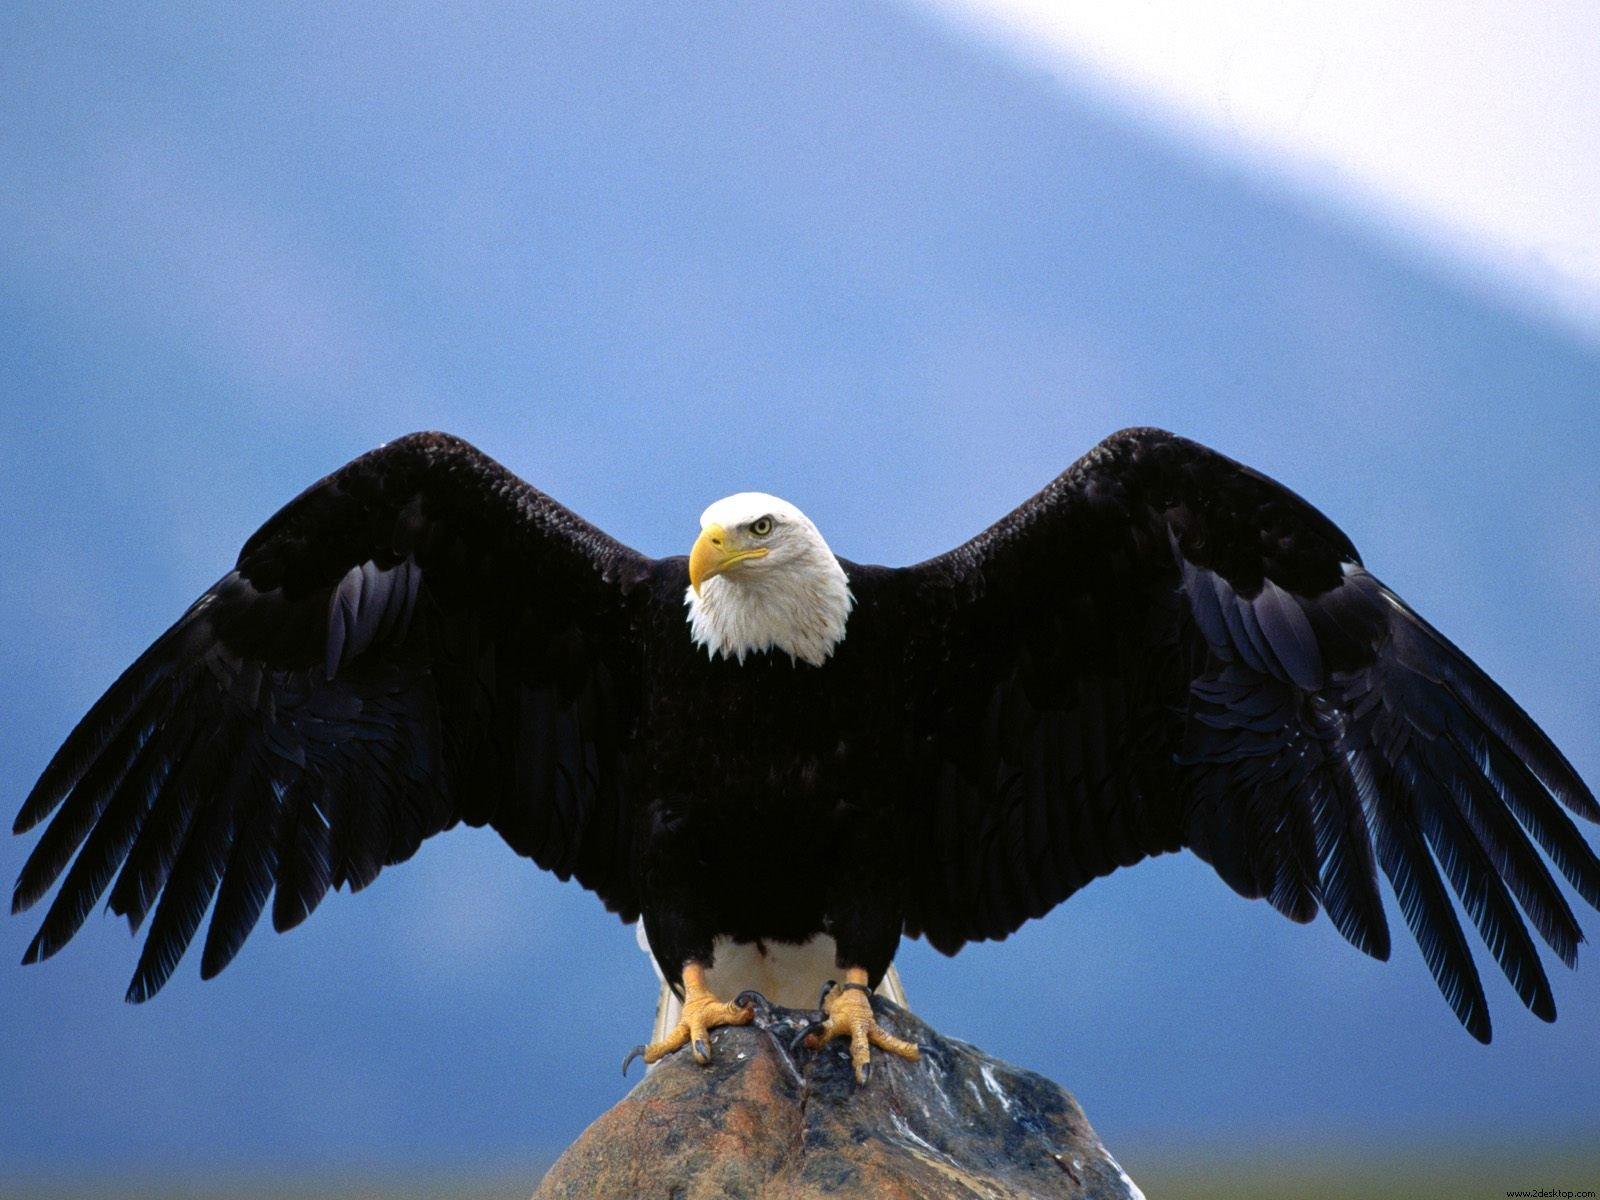 hd usa eagle images